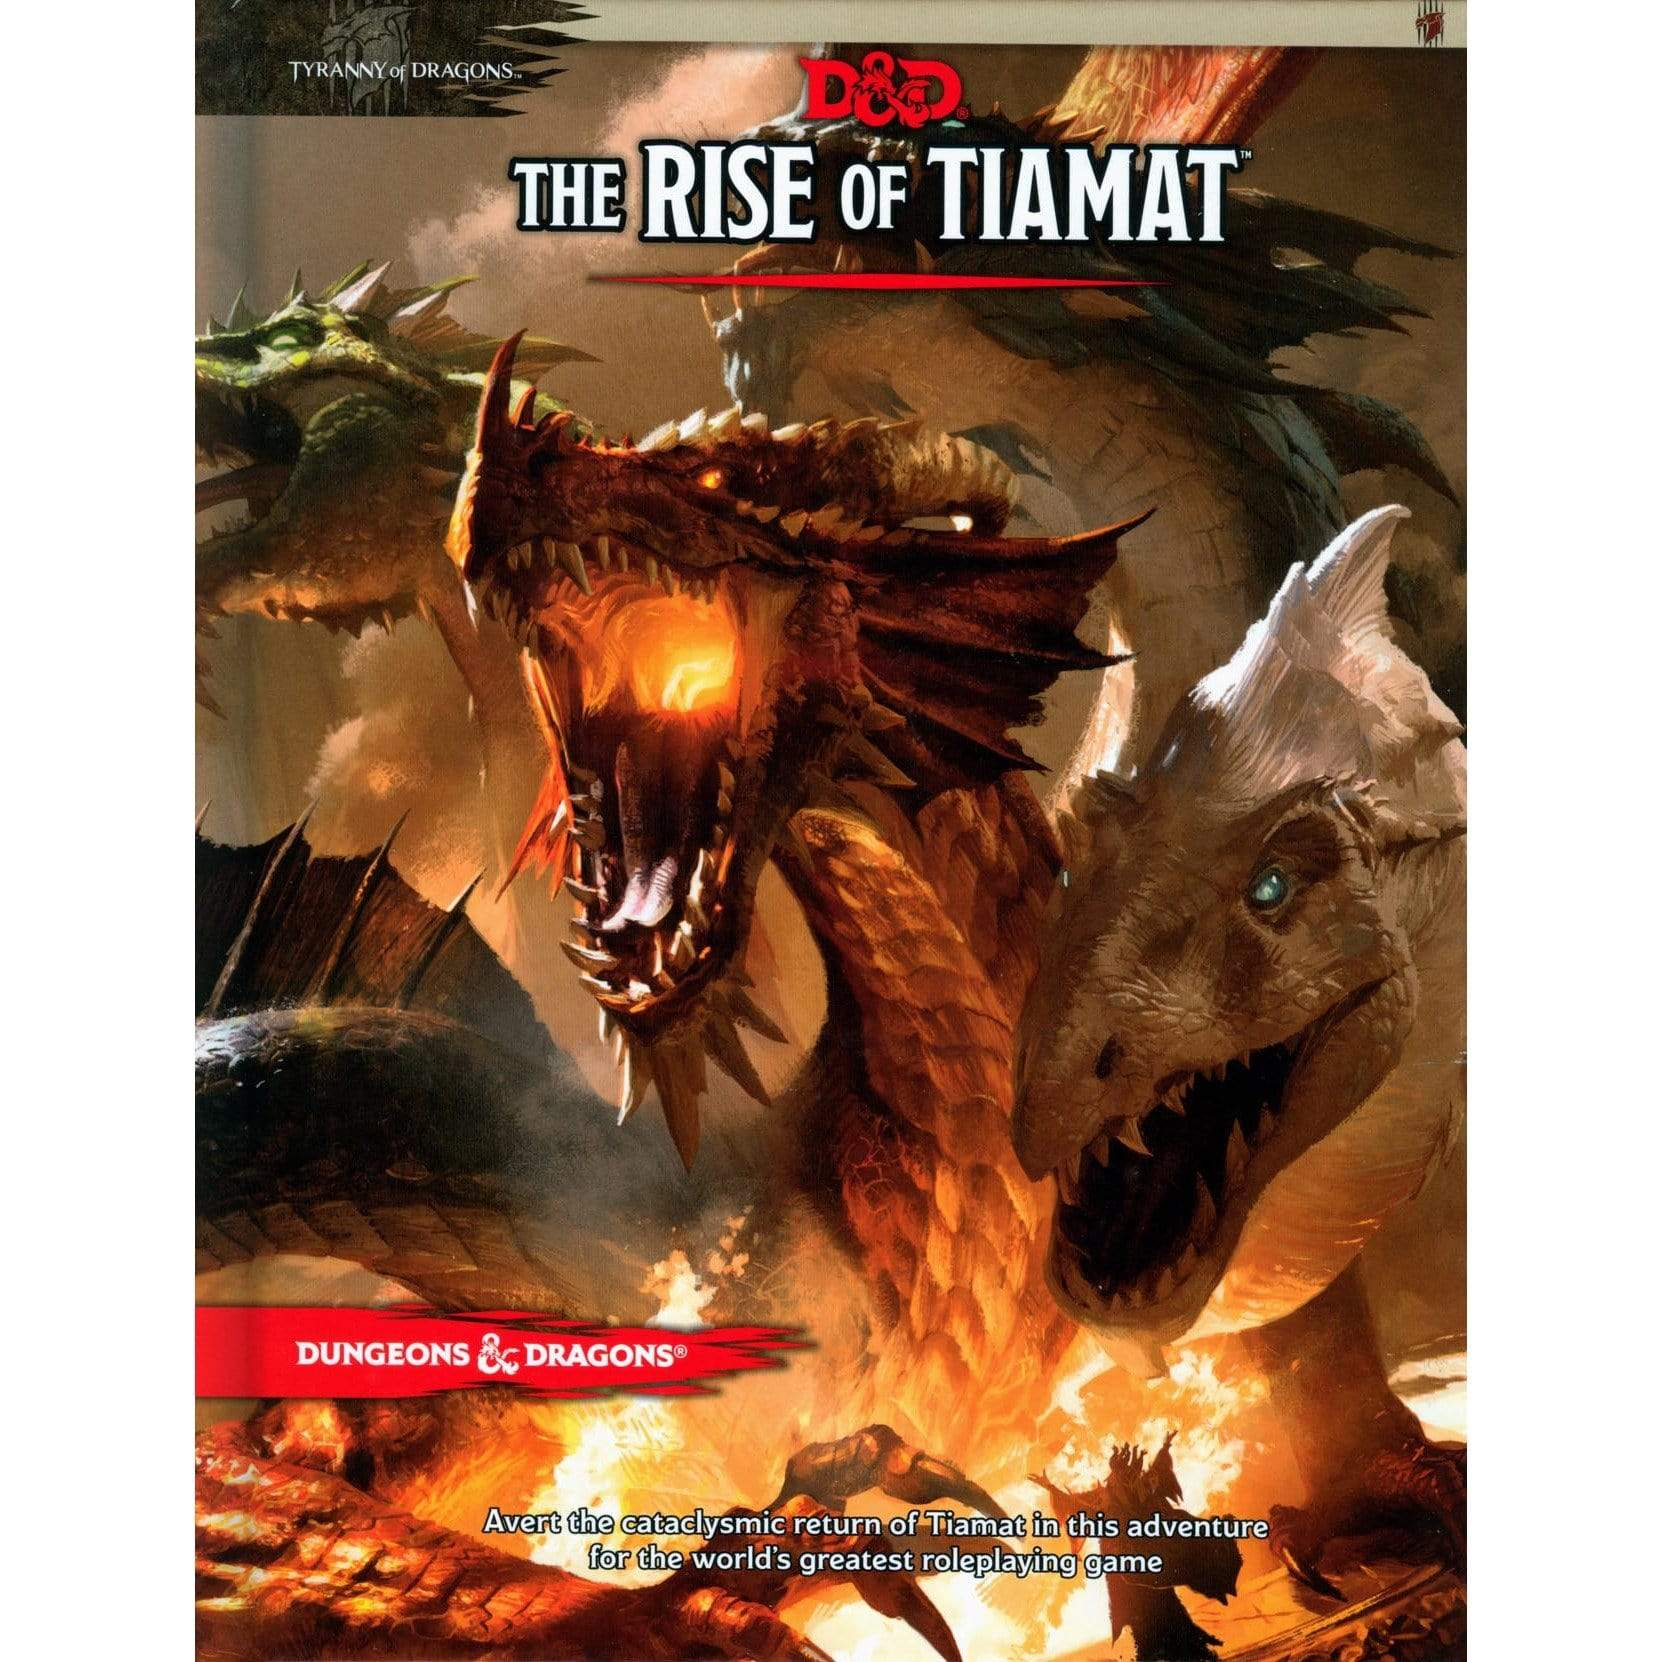 D&D: The Rise Of Tiamat Wizards of the Coast Board Games